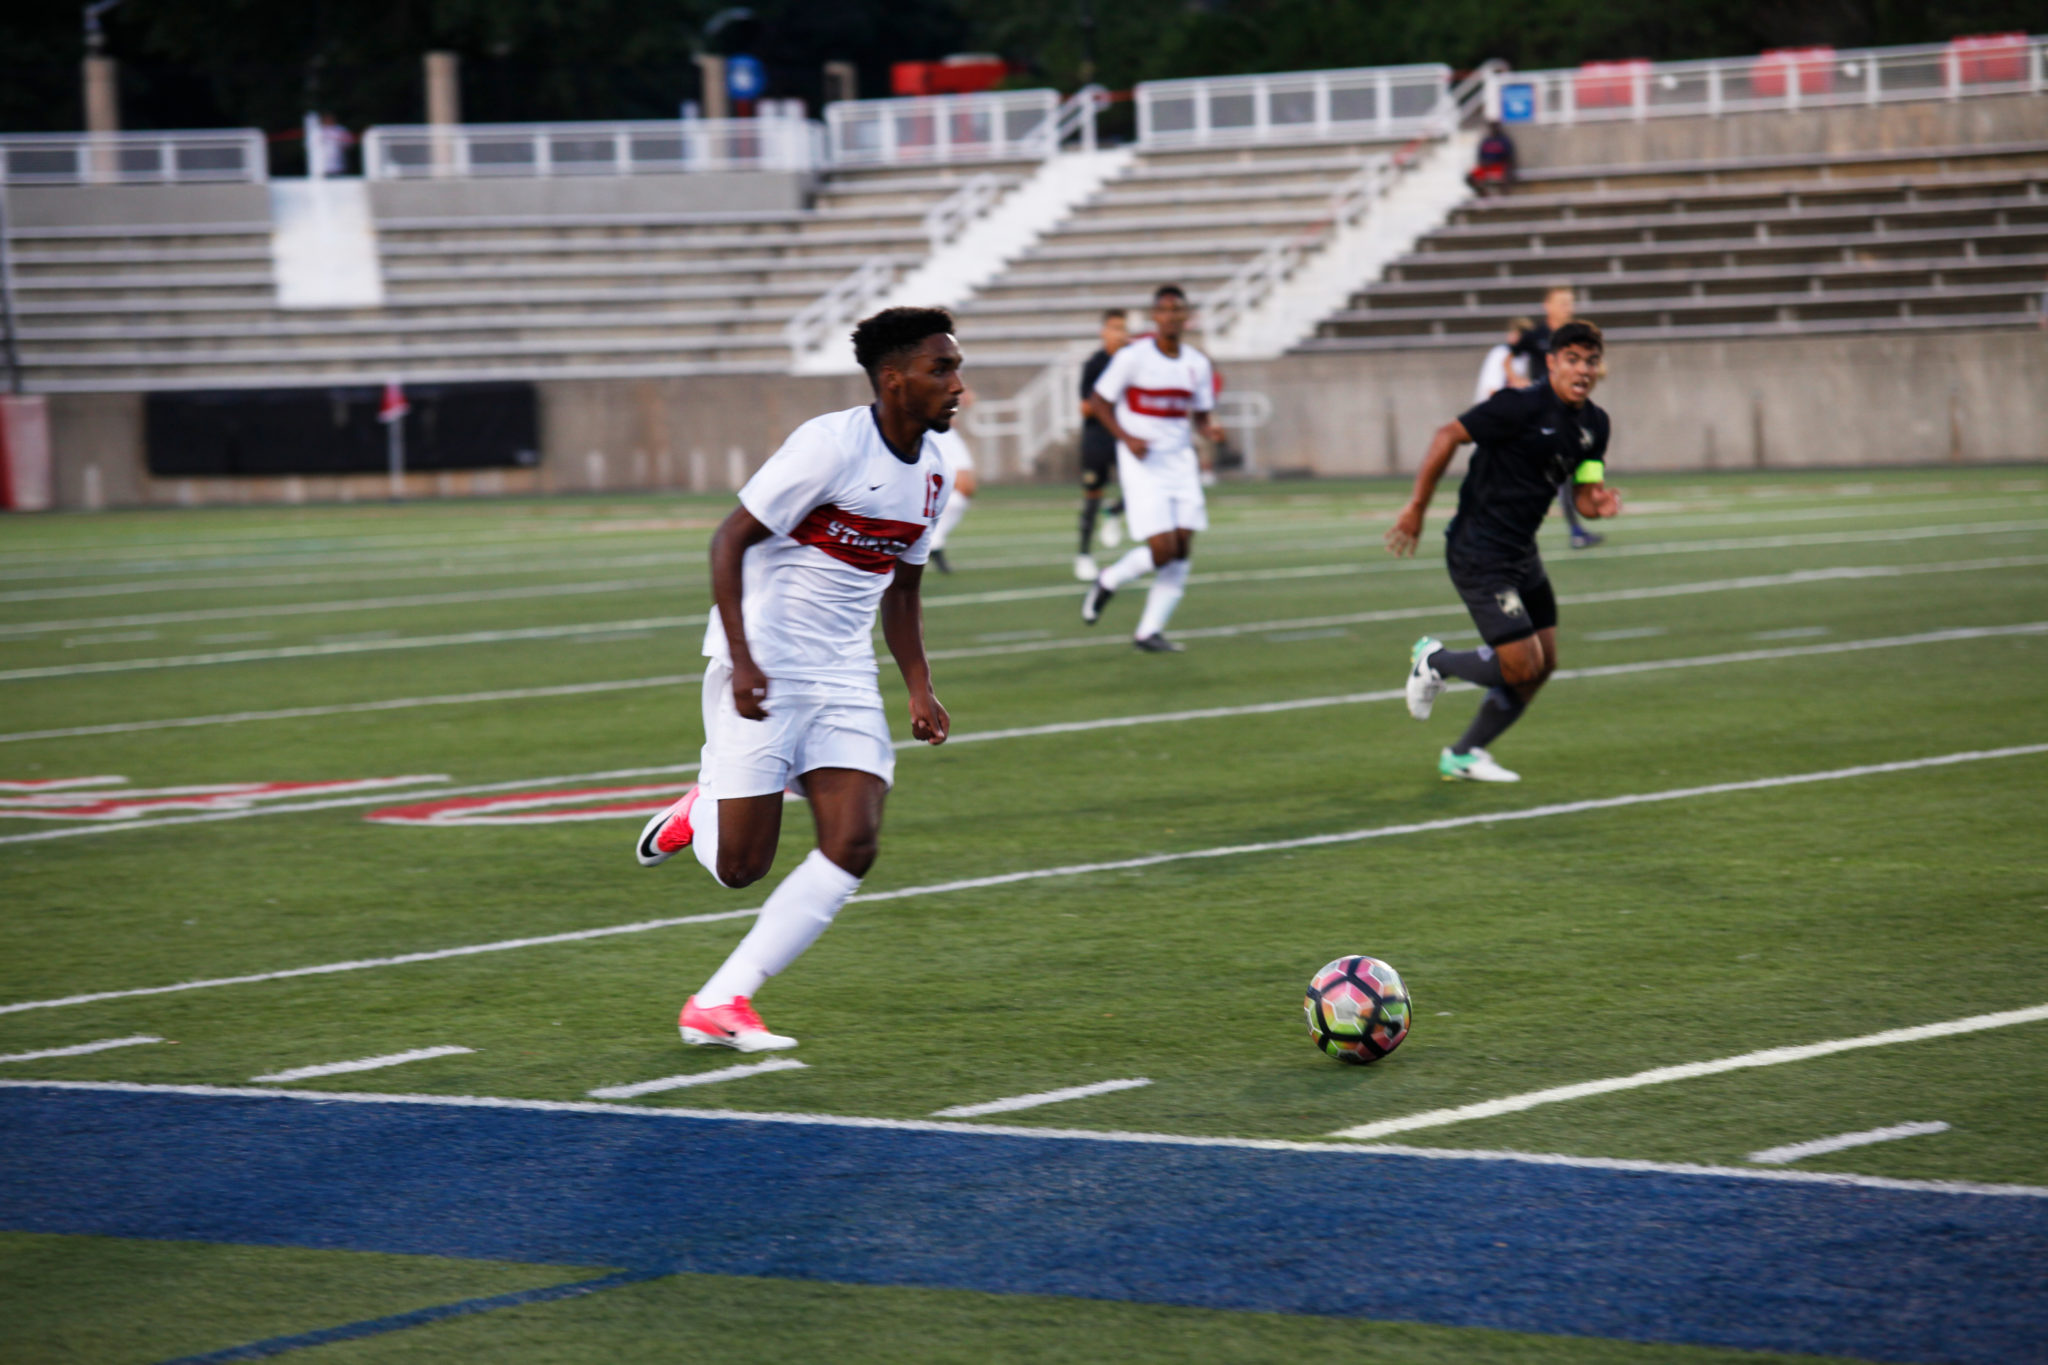 Men's Soccer picks up first win of the season in home opener | The